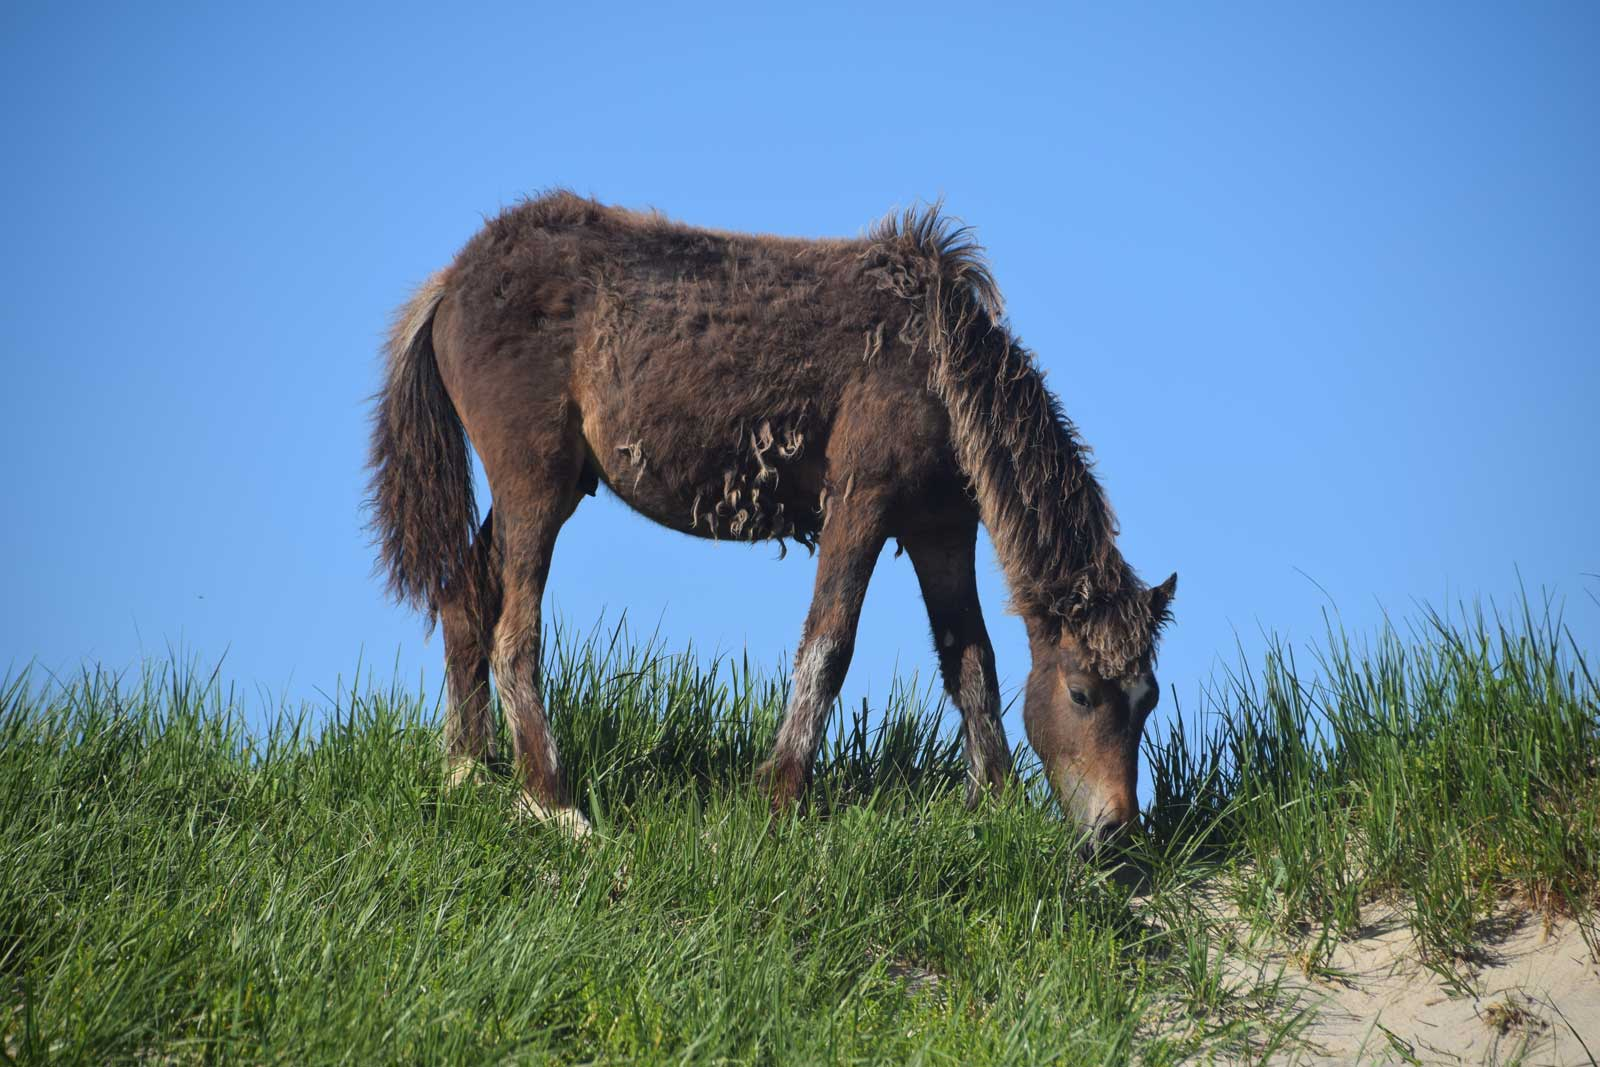 Foal eating marram grass